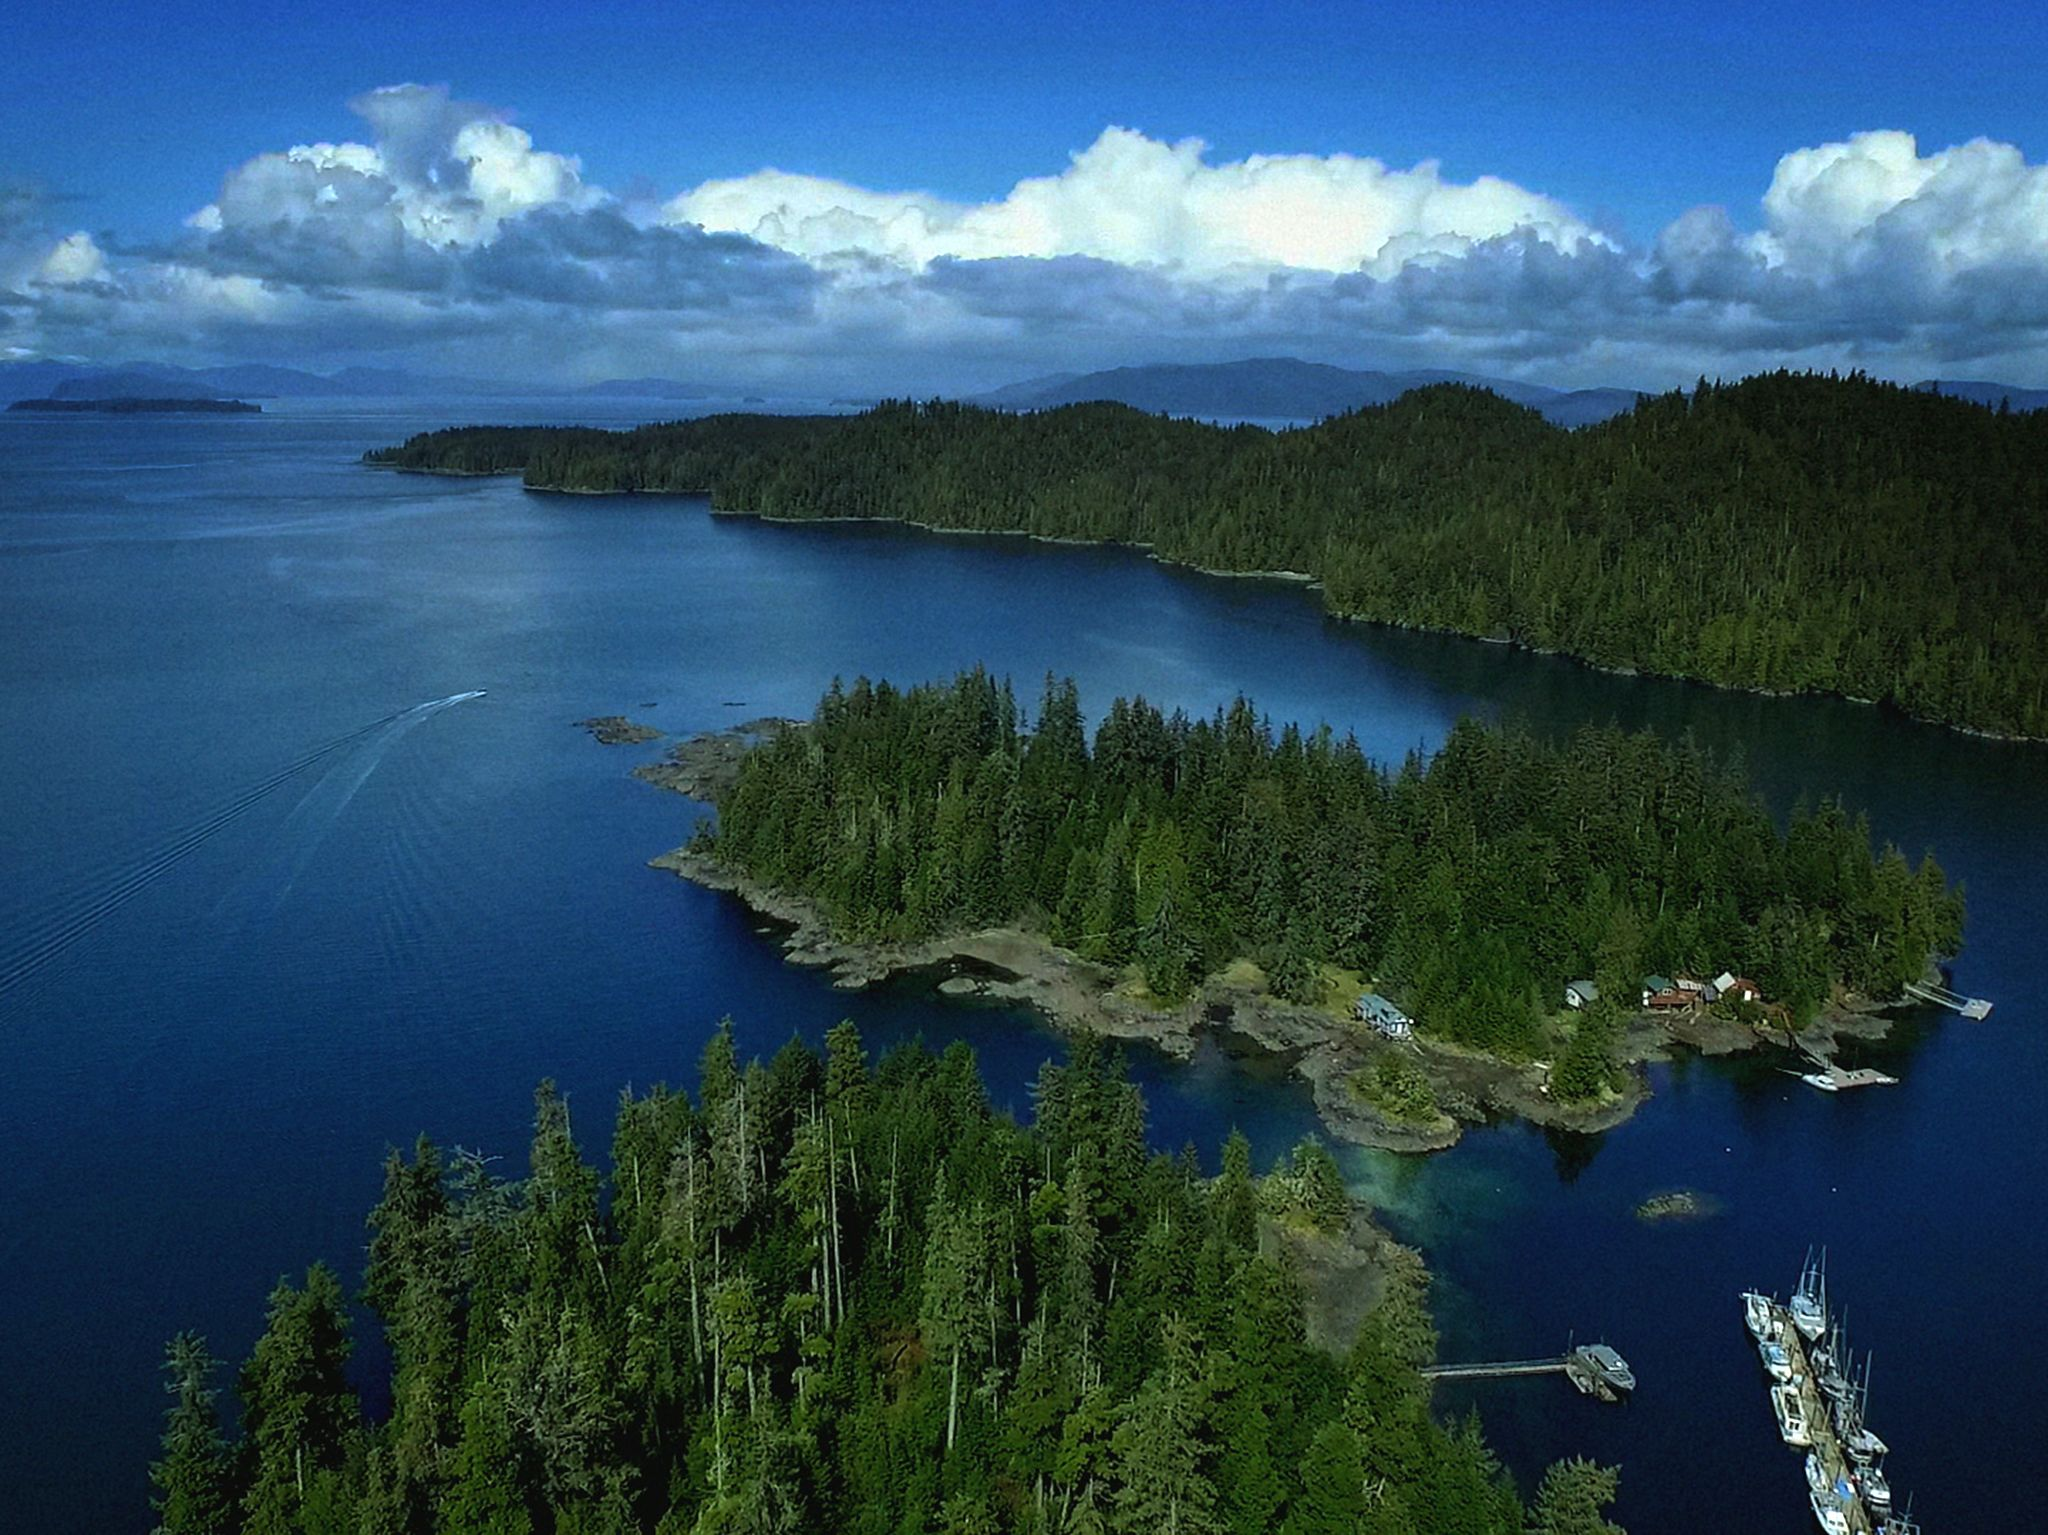 An aerial view of Port Protection. This image is from Lawless Island Alaska. [Photo of the day - September 2020]